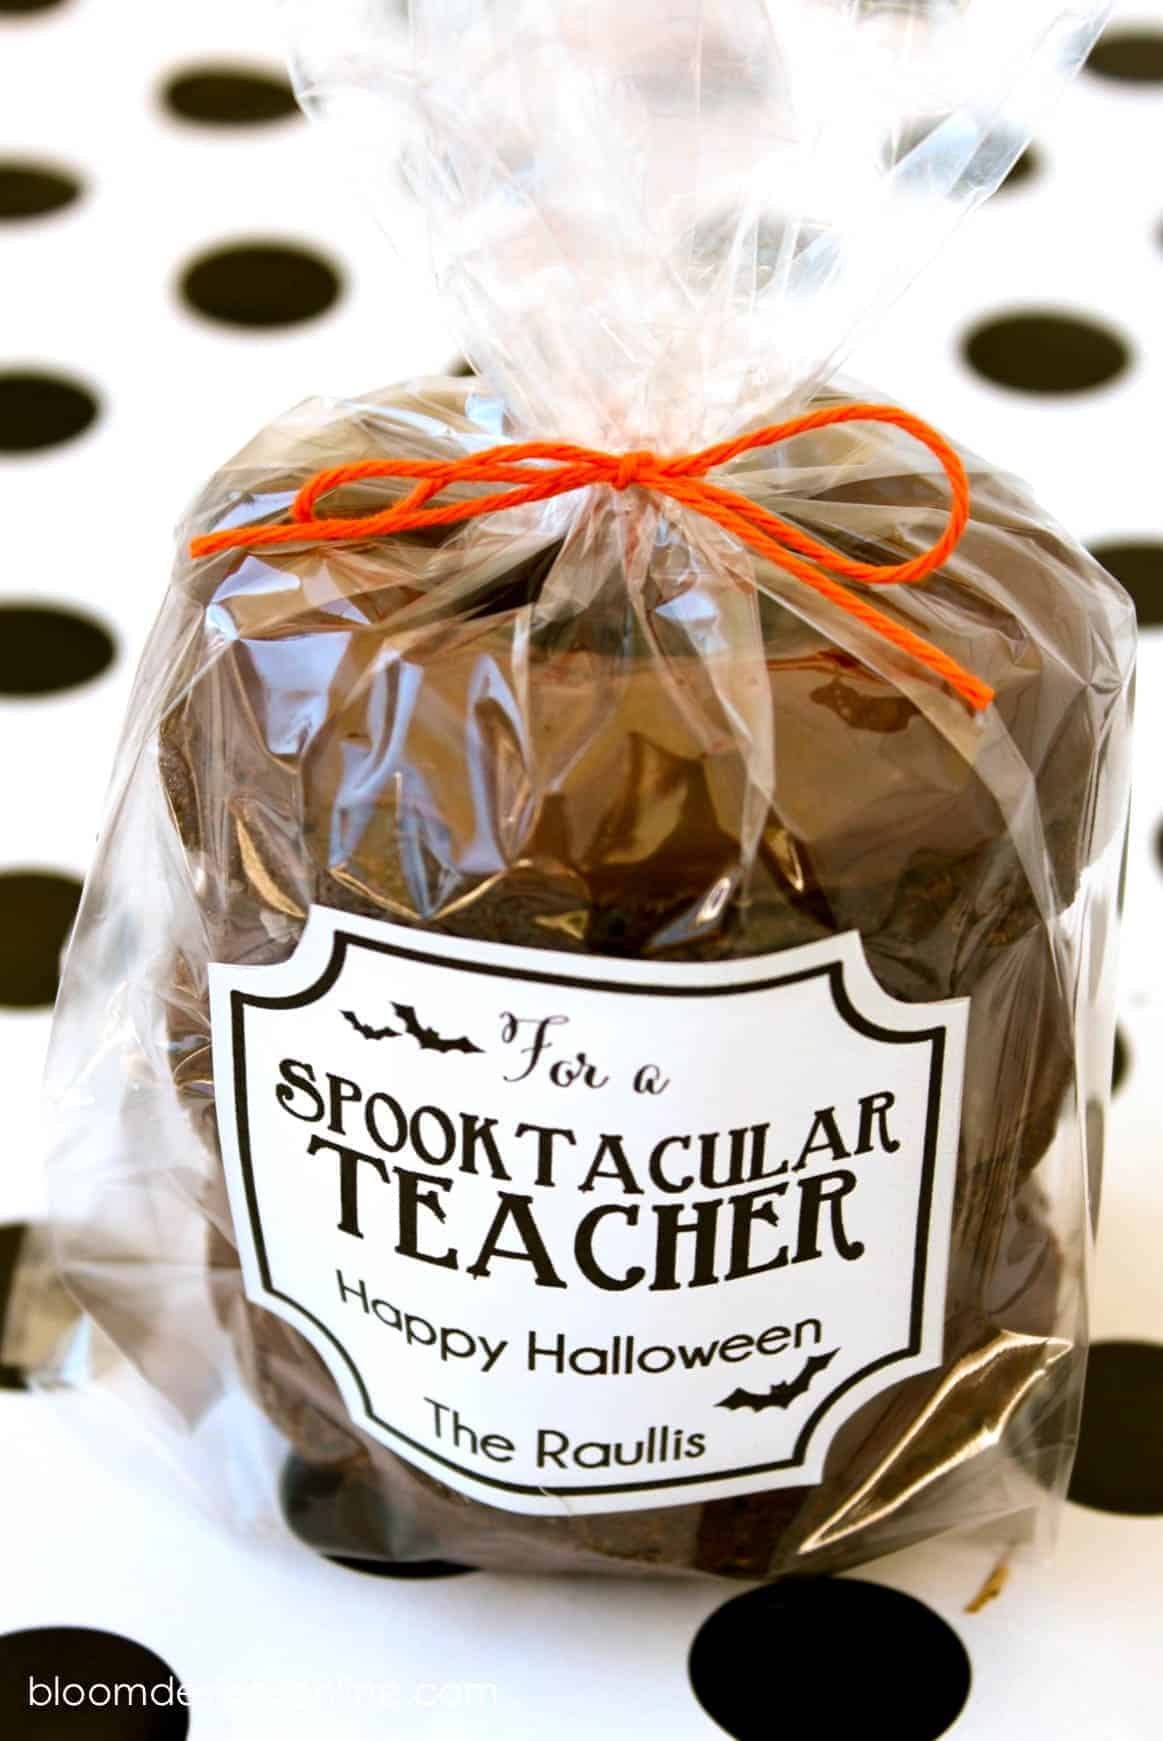 Spooktacular Teacher Gift idea and free printable label by Lil Luna | Halloween Boo ideas to treat everyone that are SO cute! #Boo #BooIdeas #Halloween #HalloweenFun #HalloweenIdeas #TrickorTreat